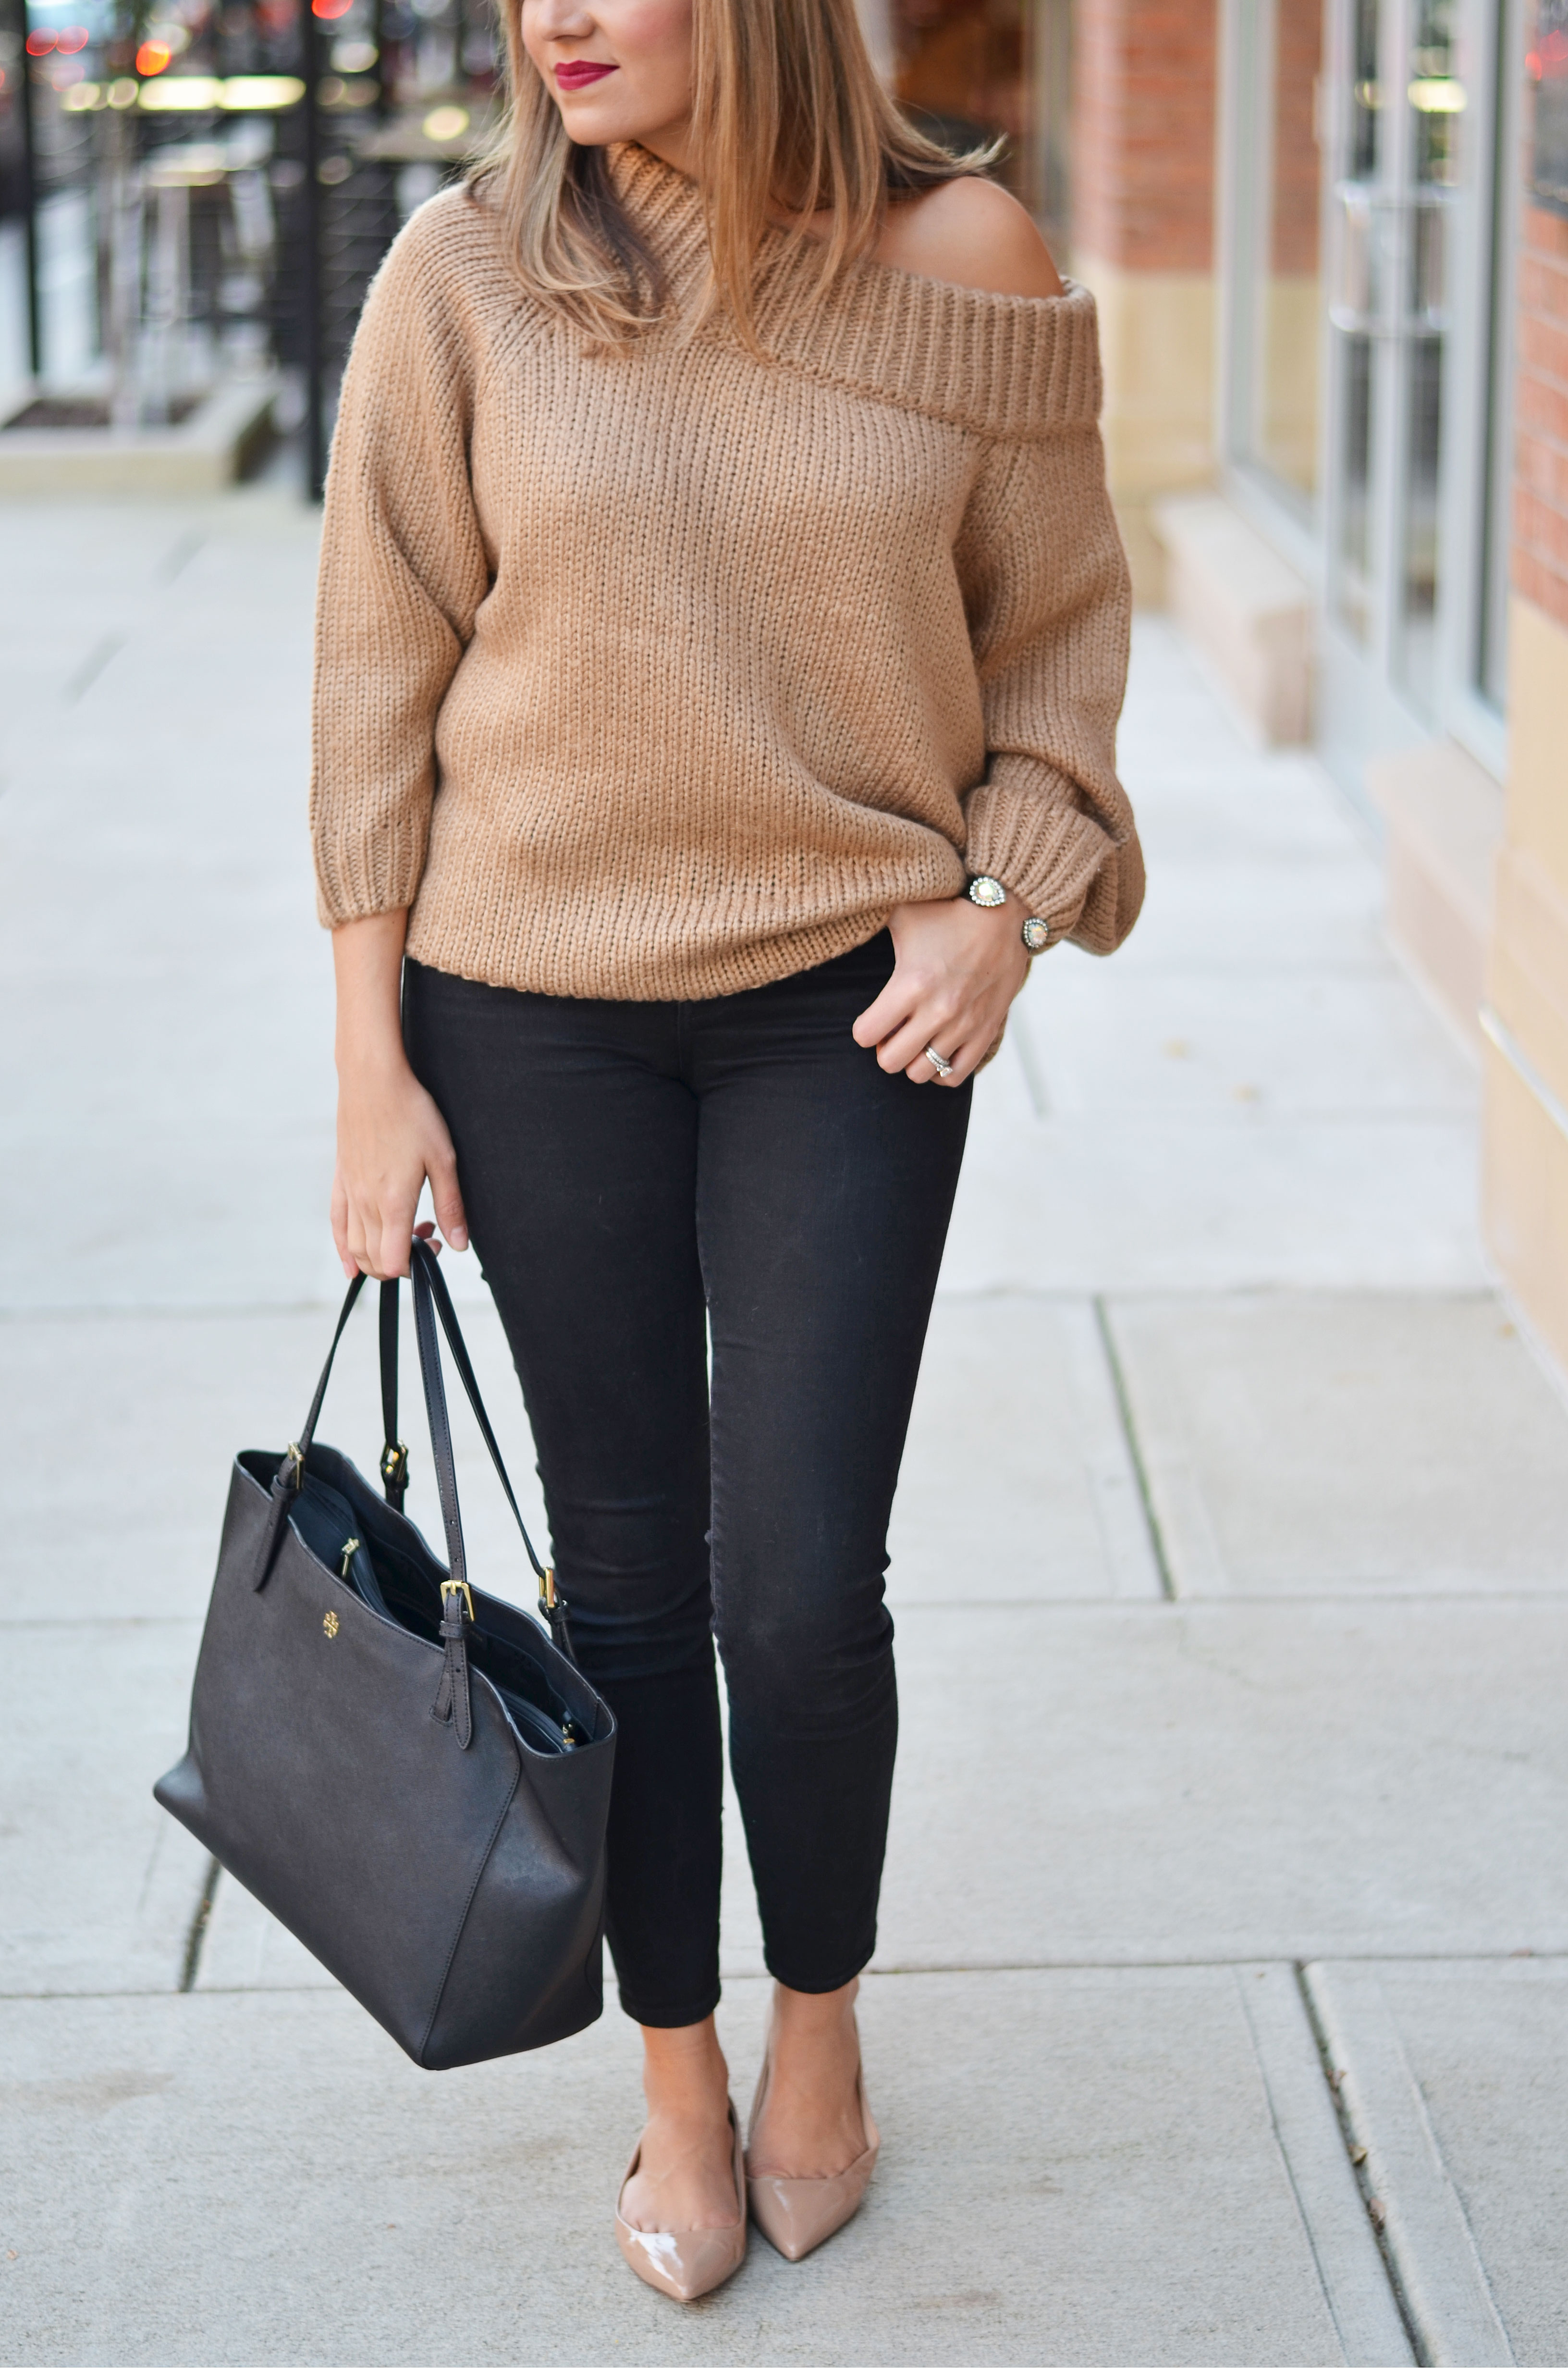 chunky camel sweater outfit - camel off shoulder sweater with black skinny jeans, nude patent flats, Tory Burch tote | www.bylaurenm.com